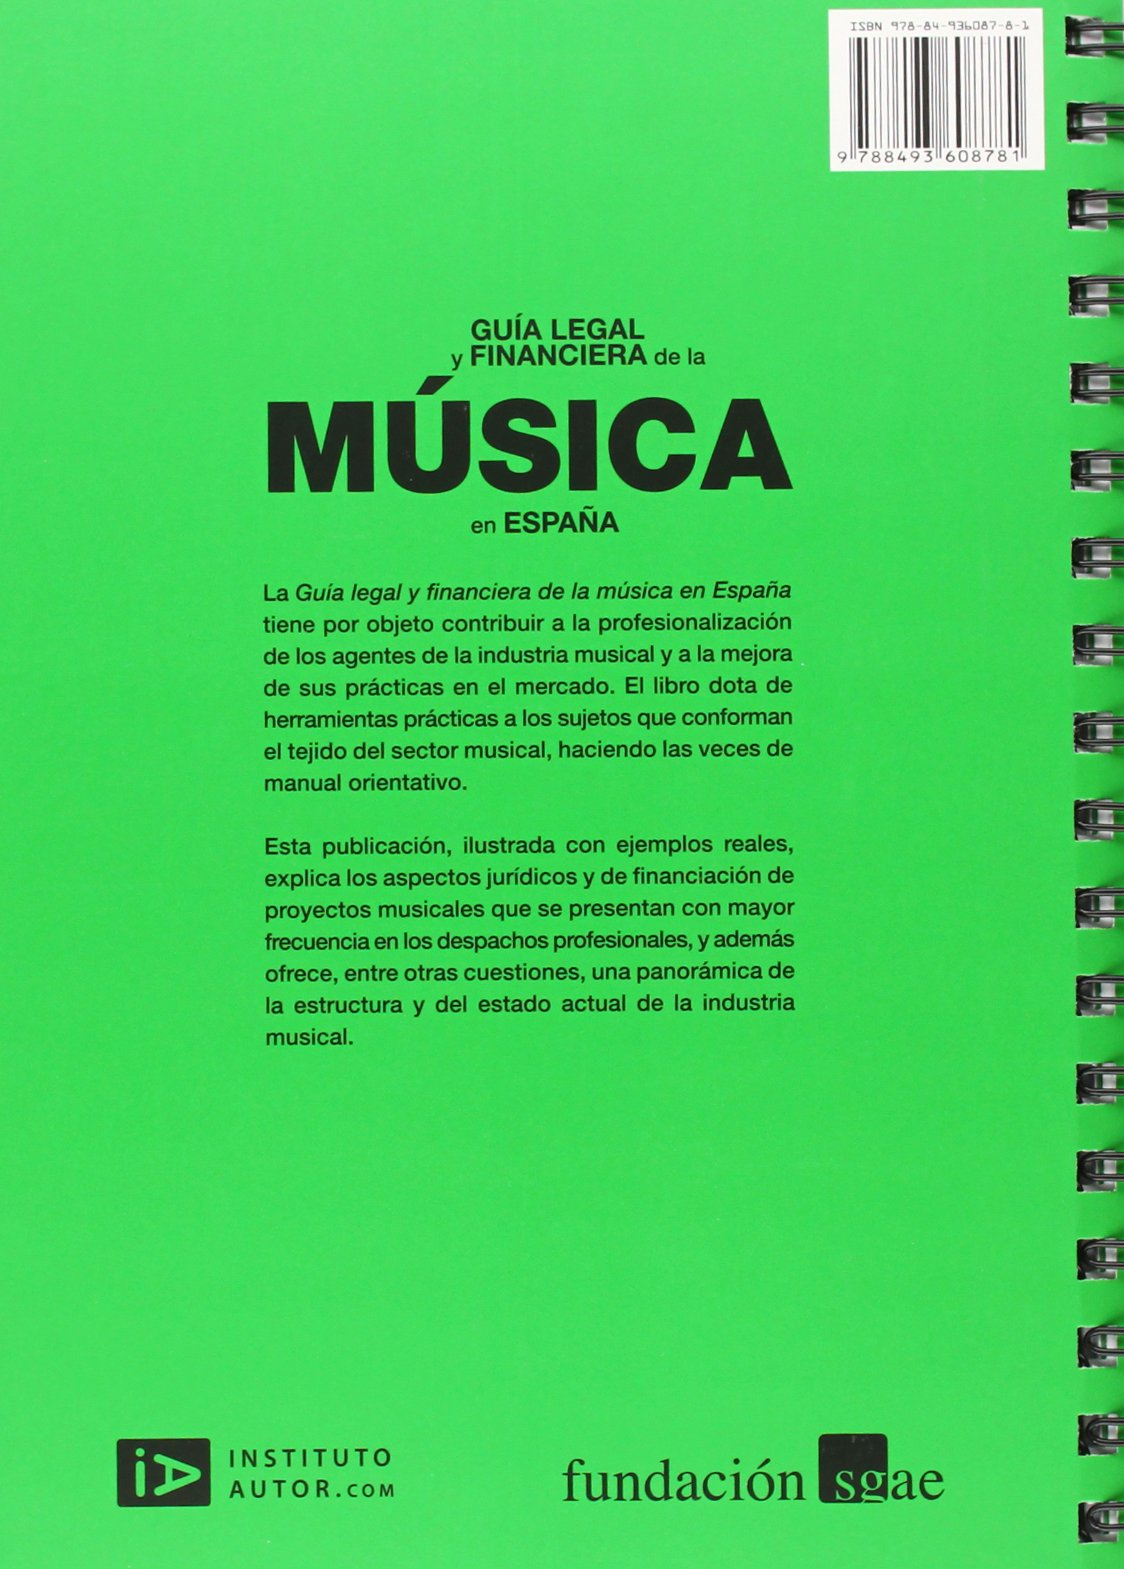 GUÍA LEGAL Y FINANCIERA DE LA MÚSICA EN ESPAÑA: AA.VV: 9788493608781: Amazon.com: Books